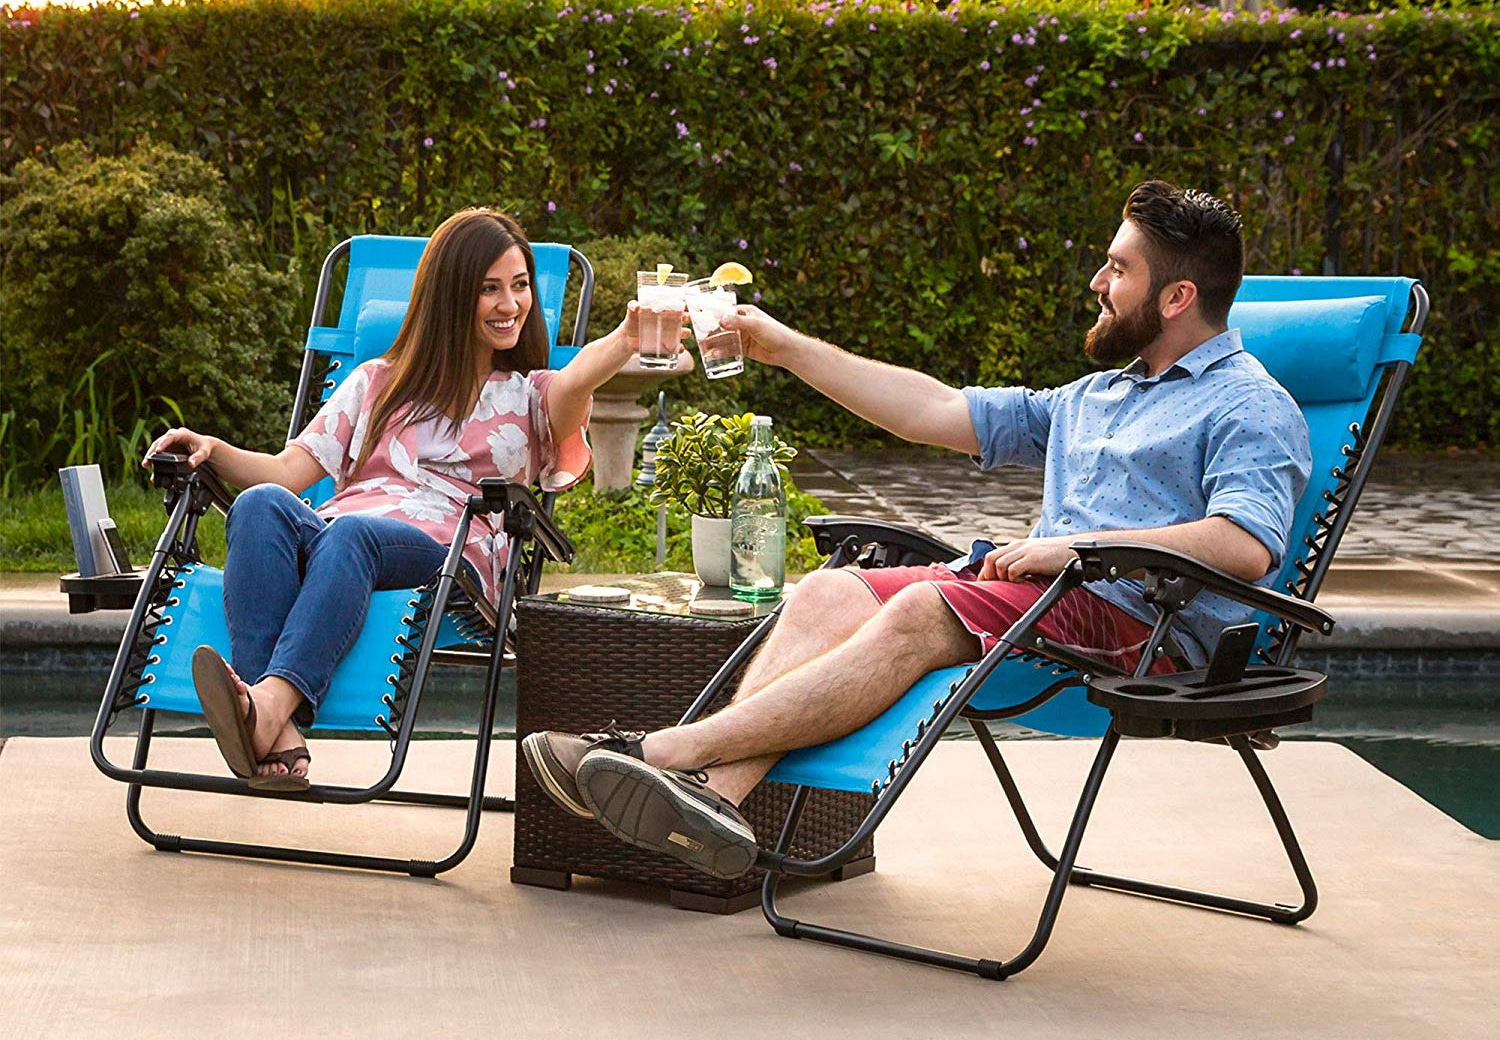 Phenomenal Top 10 Best Folding Rocking Chairs In 2019 Reviews Guide Ibusinesslaw Wood Chair Design Ideas Ibusinesslaworg